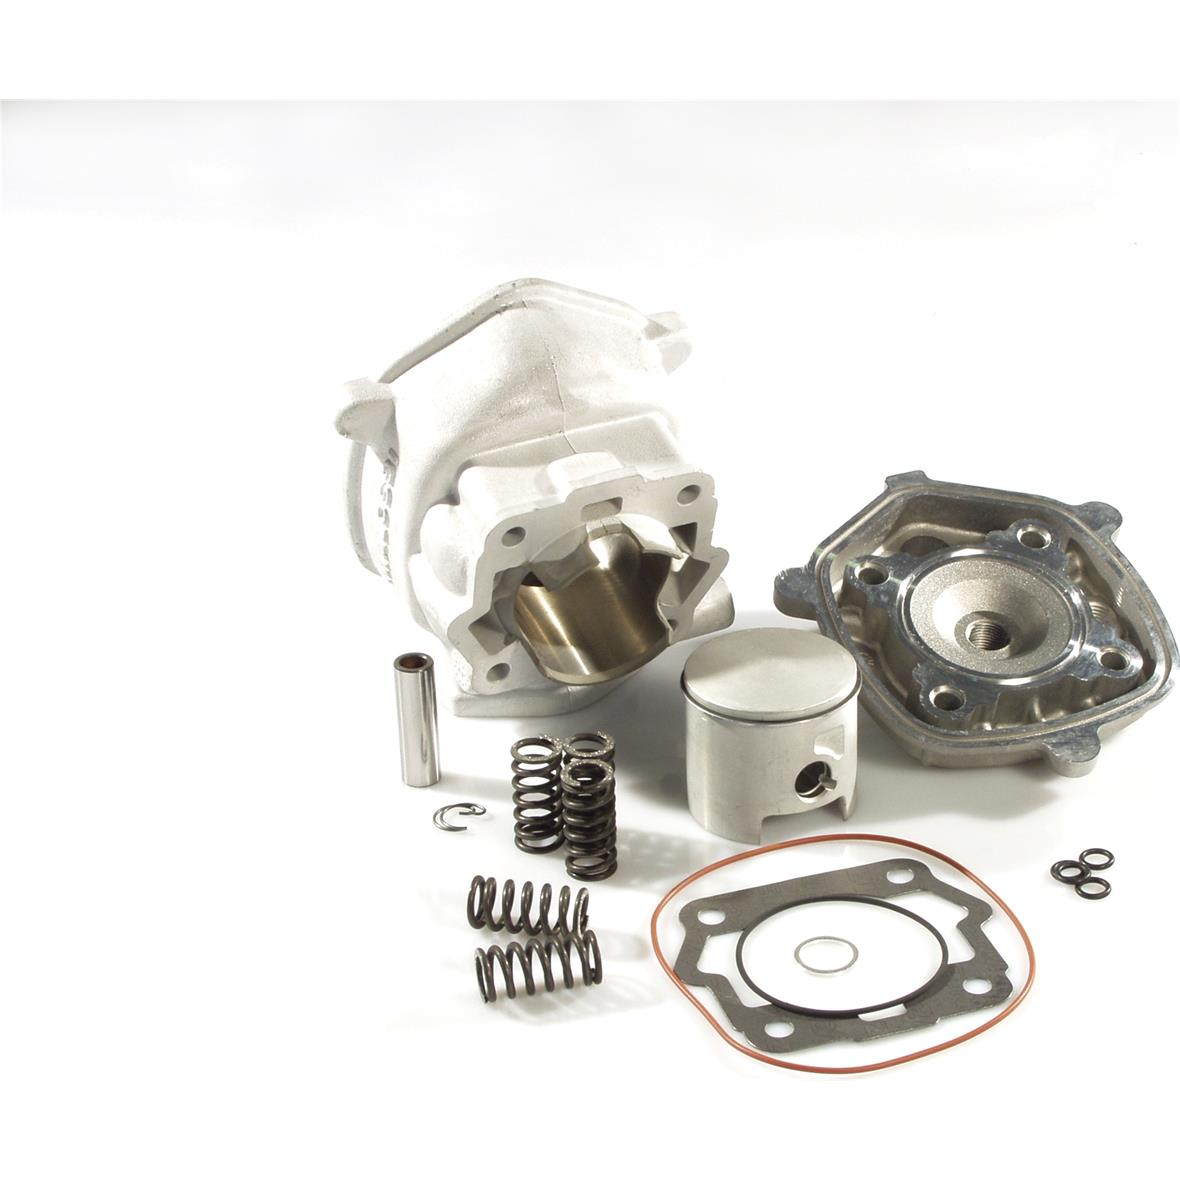 Product Image for 'Racing Cylinder MALOSSI MHR 79 ccTitle'